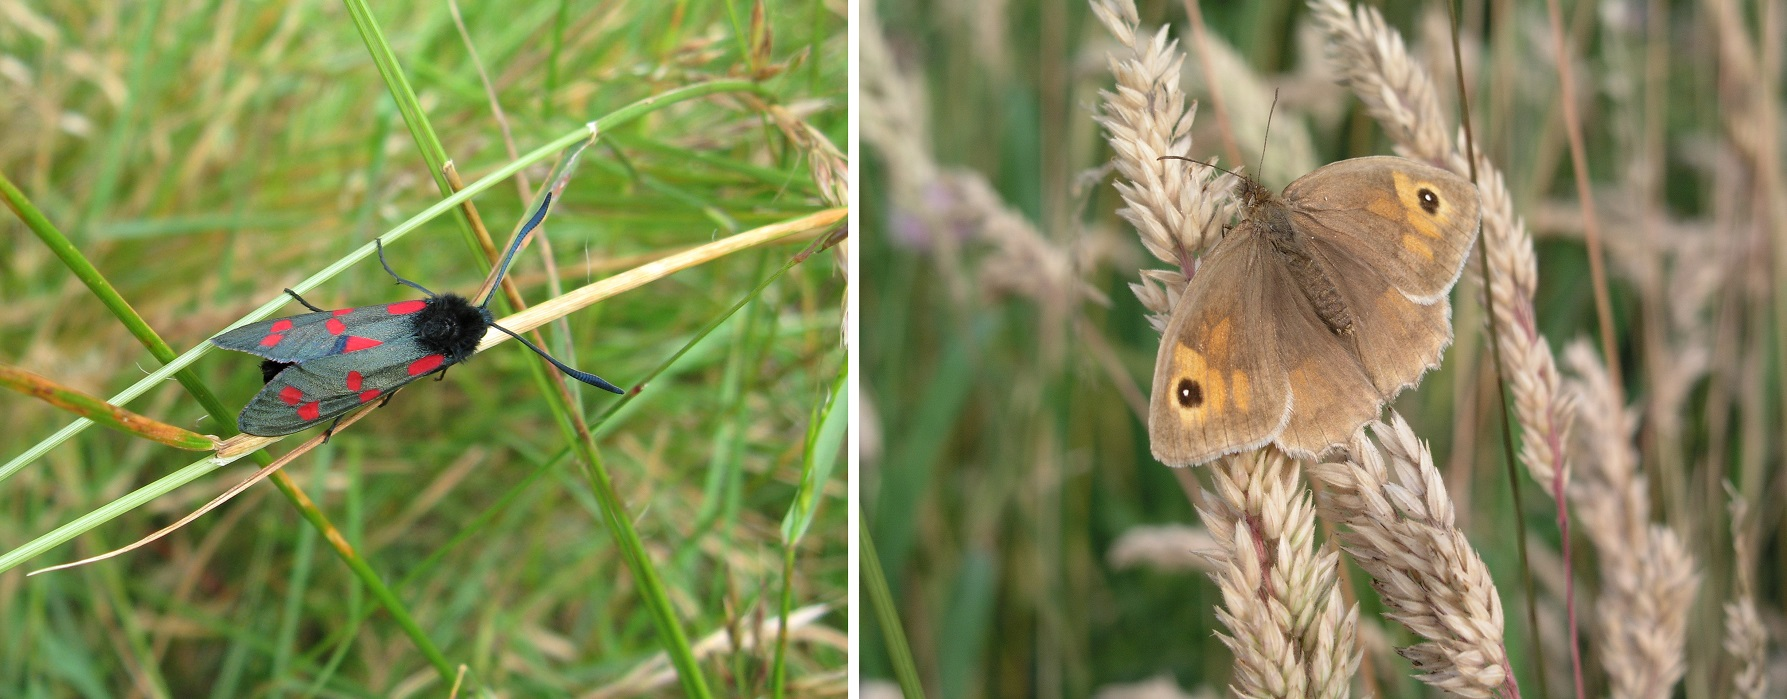 The 6-Spot Burnet Moth and the Ringlet Butterfly